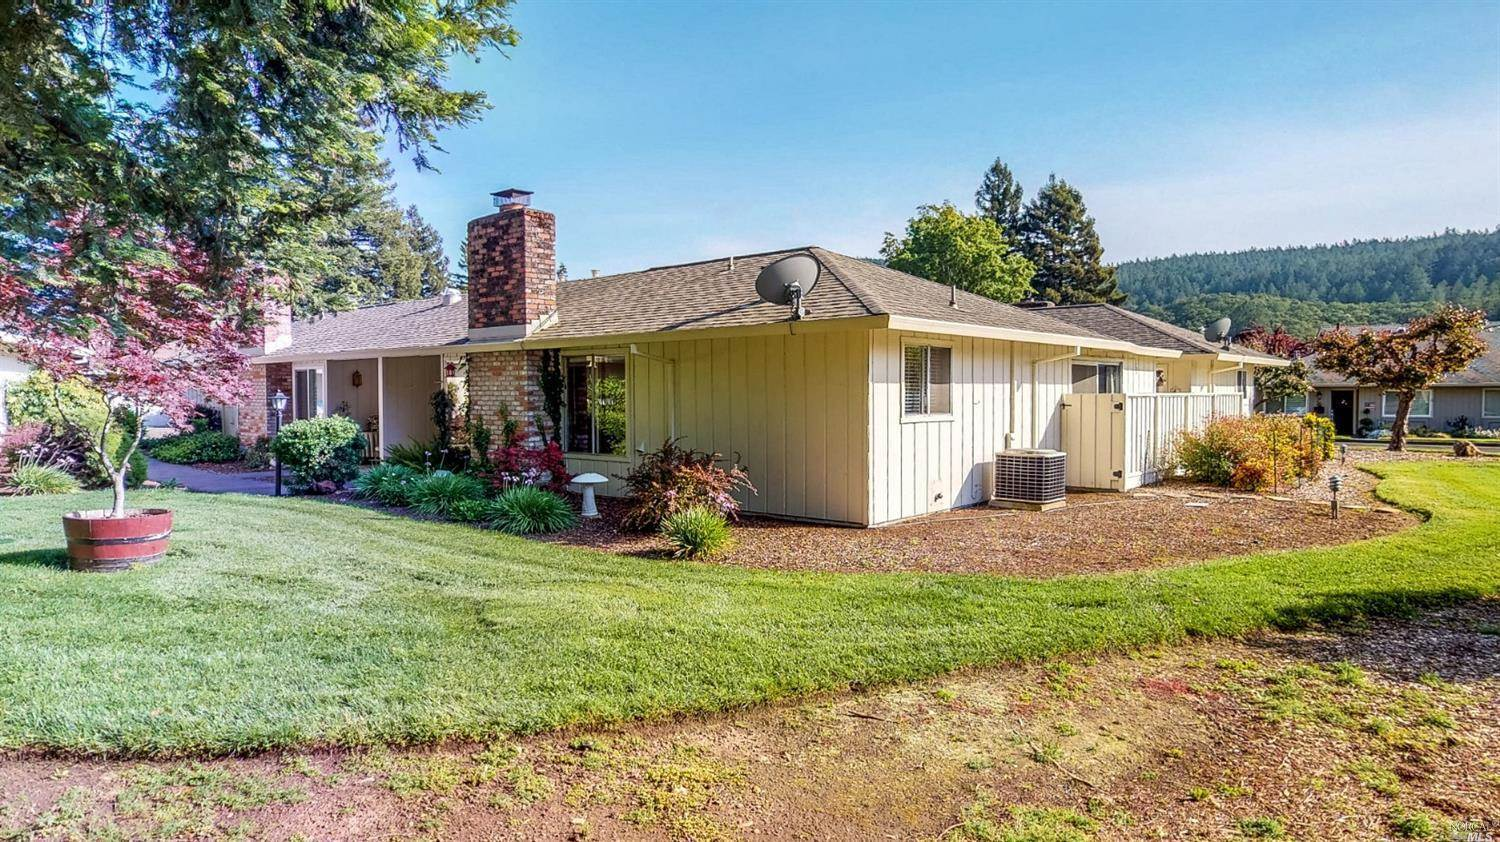 56 Aspen Meadows Circle, Santa Rosa, CA 95409